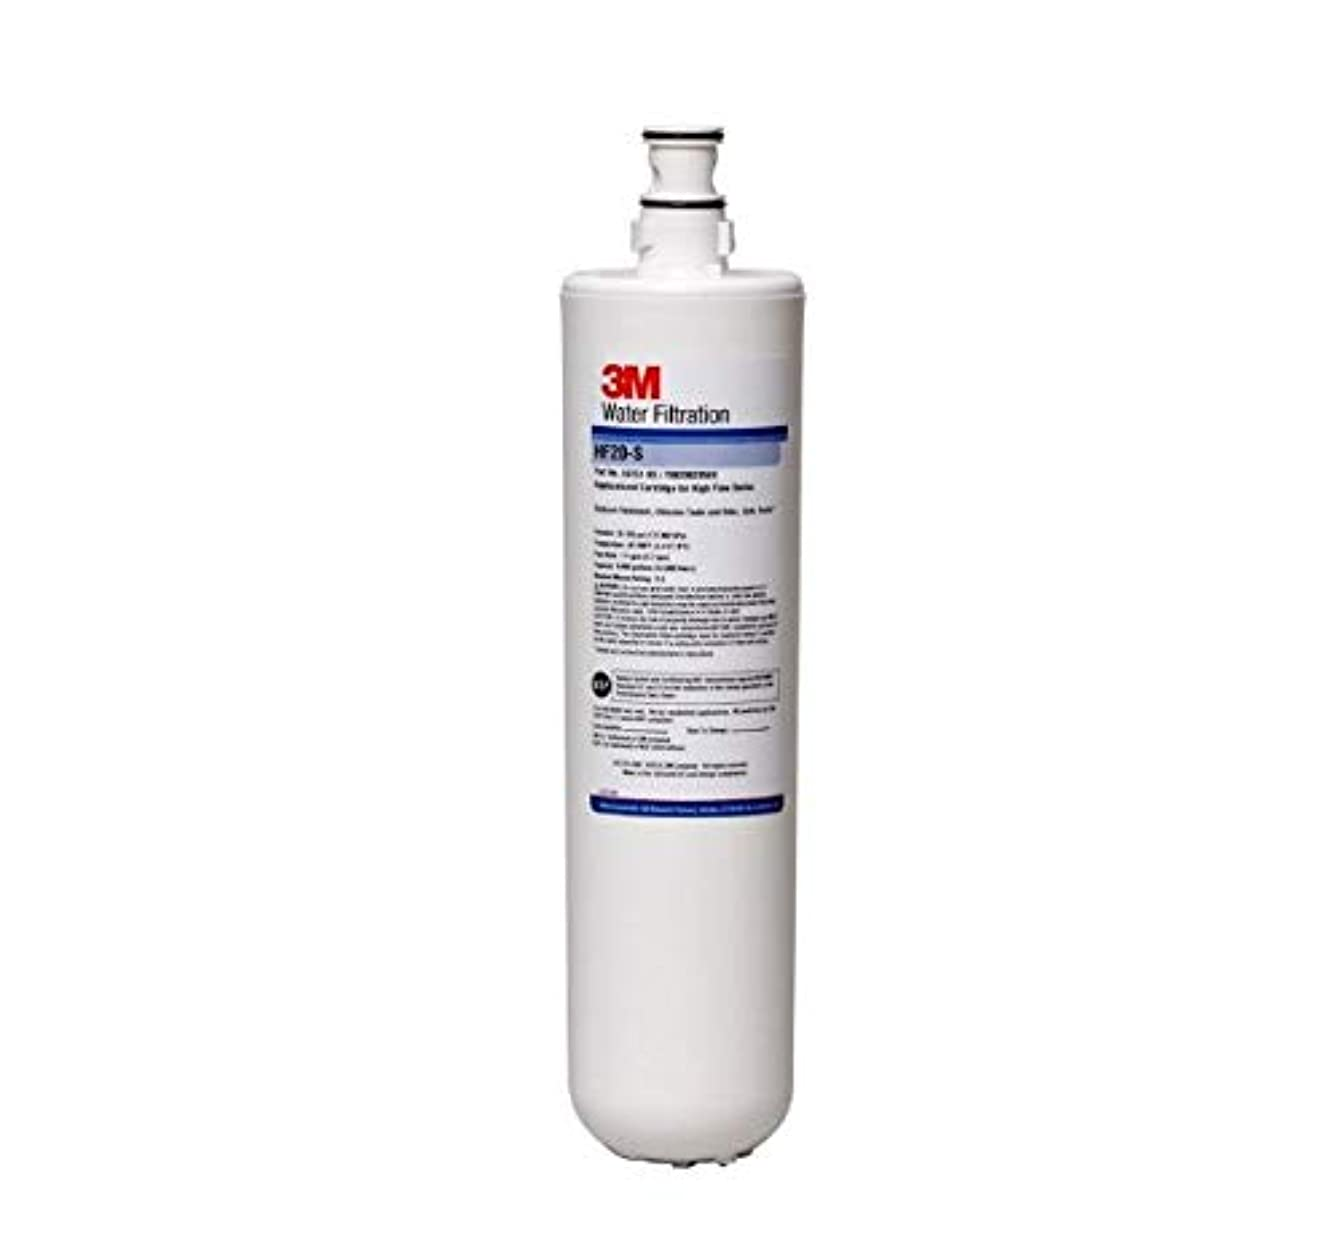 3M(TM) Water Filtration Products Replacement Filter Cartridge, Model HF20-S, 5615103 ceugjsjtlwdmg12